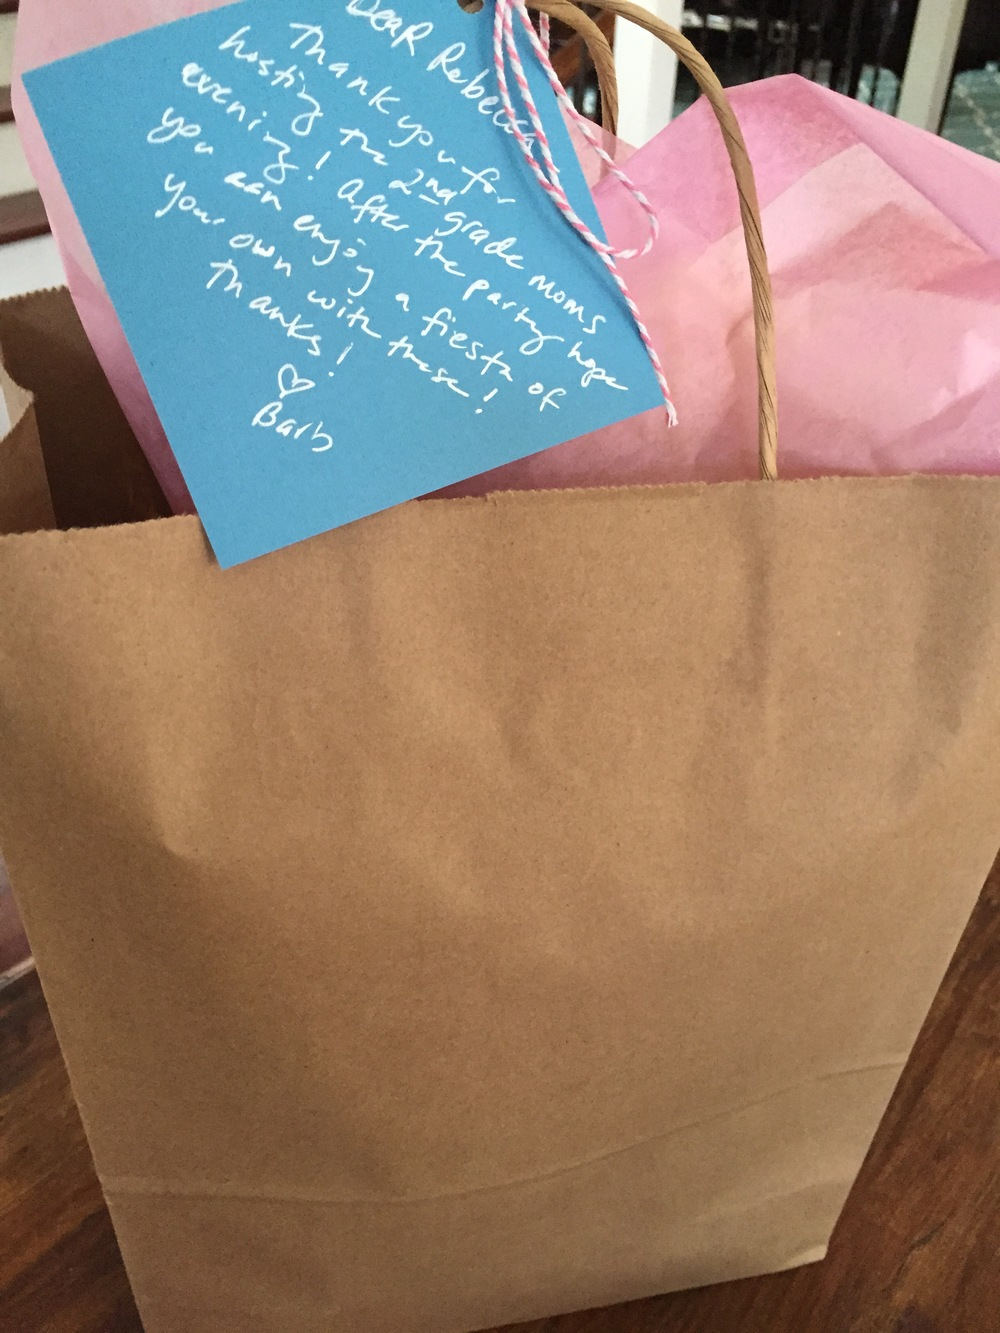 My friend, Rebecca, hosted a Monday NIght event with another friend, Meredith. I added a note to the bag to tie it all together.